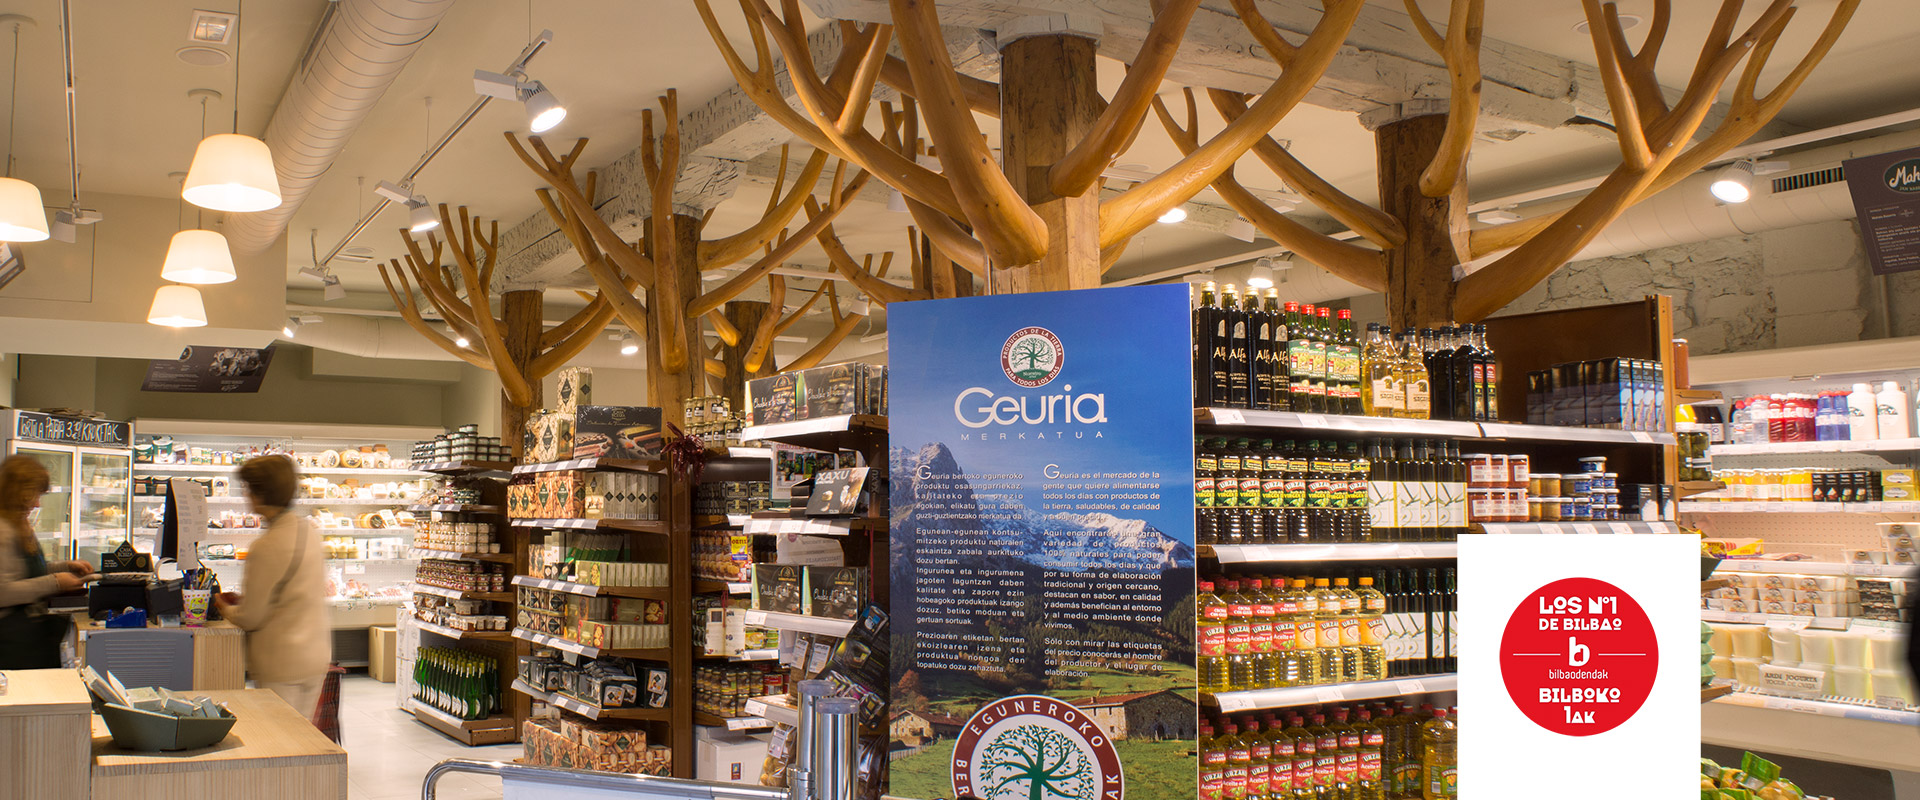 Geuria food store from the entrance